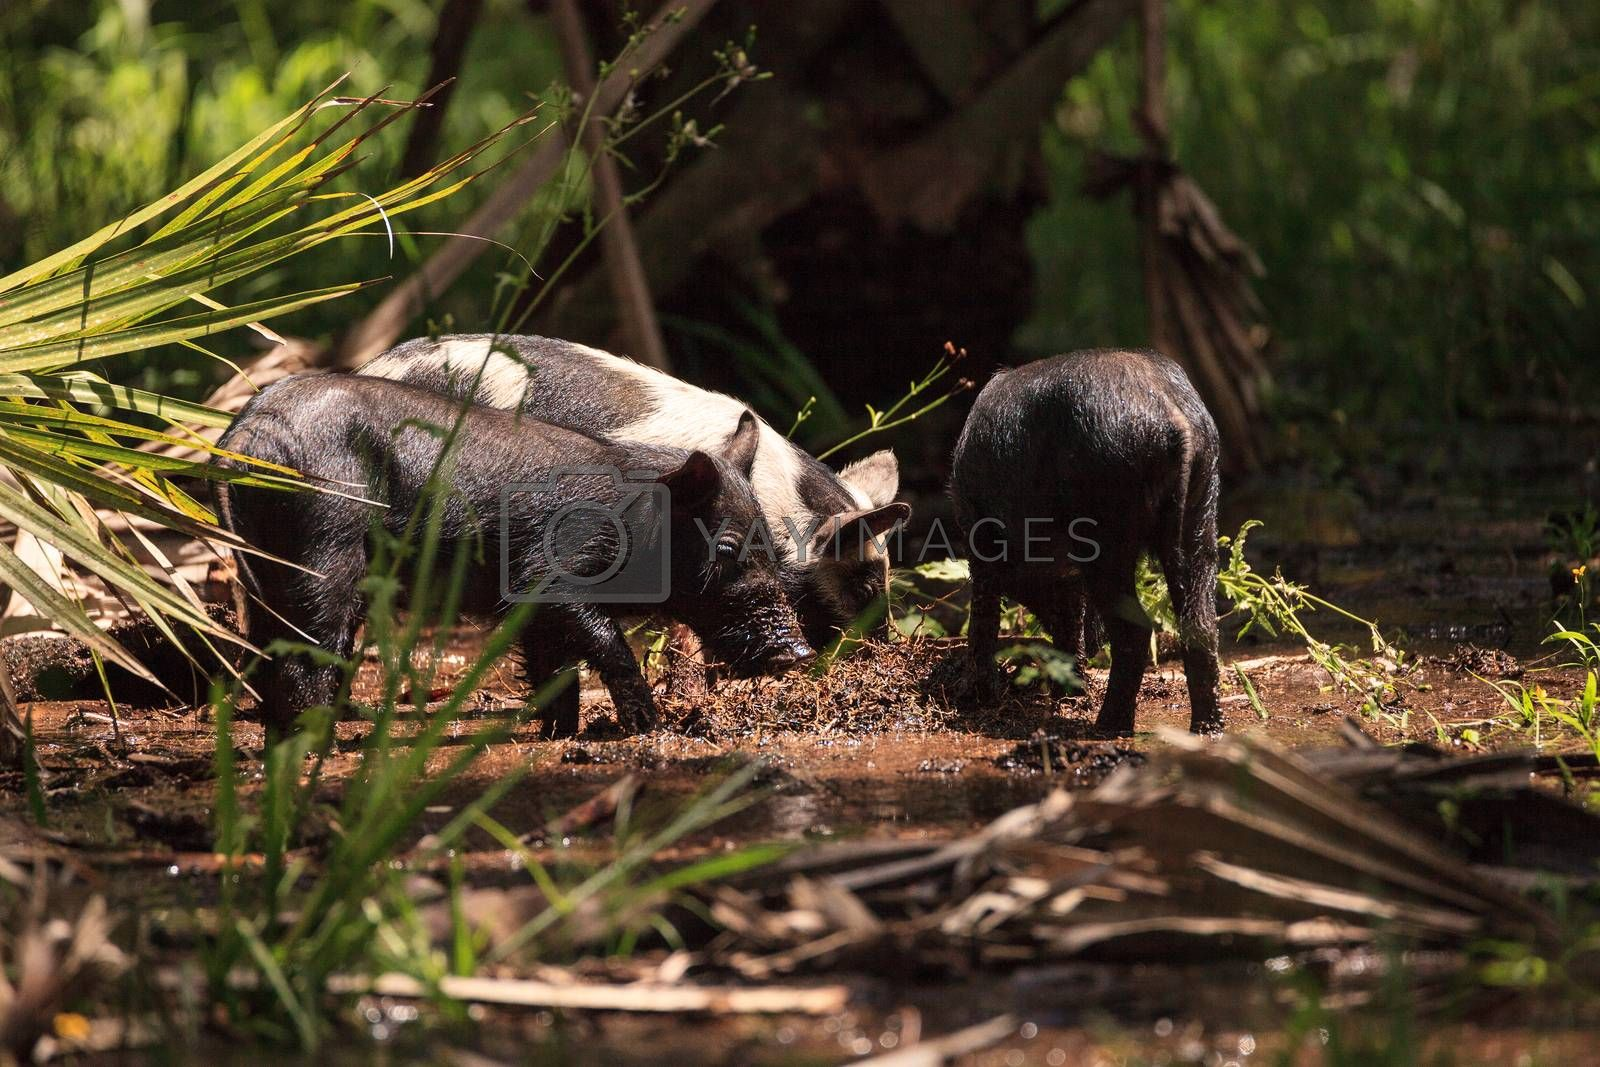 Baby wild hog also called feral hog or Sus scrofa forage for food in Myakka River State Park during the flood season in Sarasota, Florida.